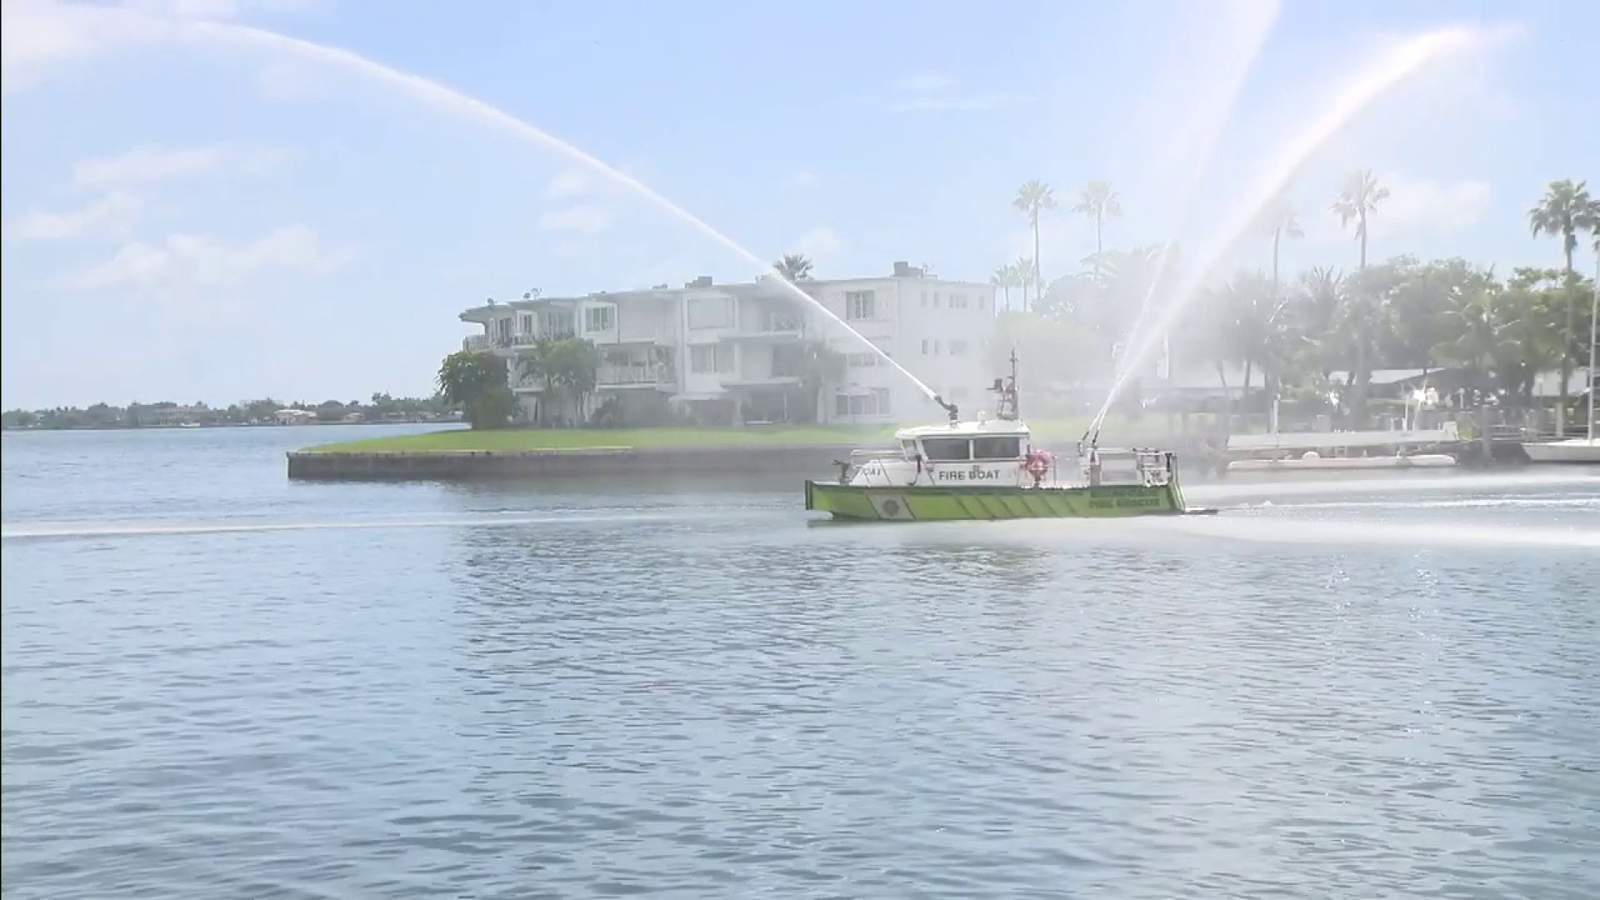 Miami-Dade fireboats hit the water to help with major fish kill in South Florida waters